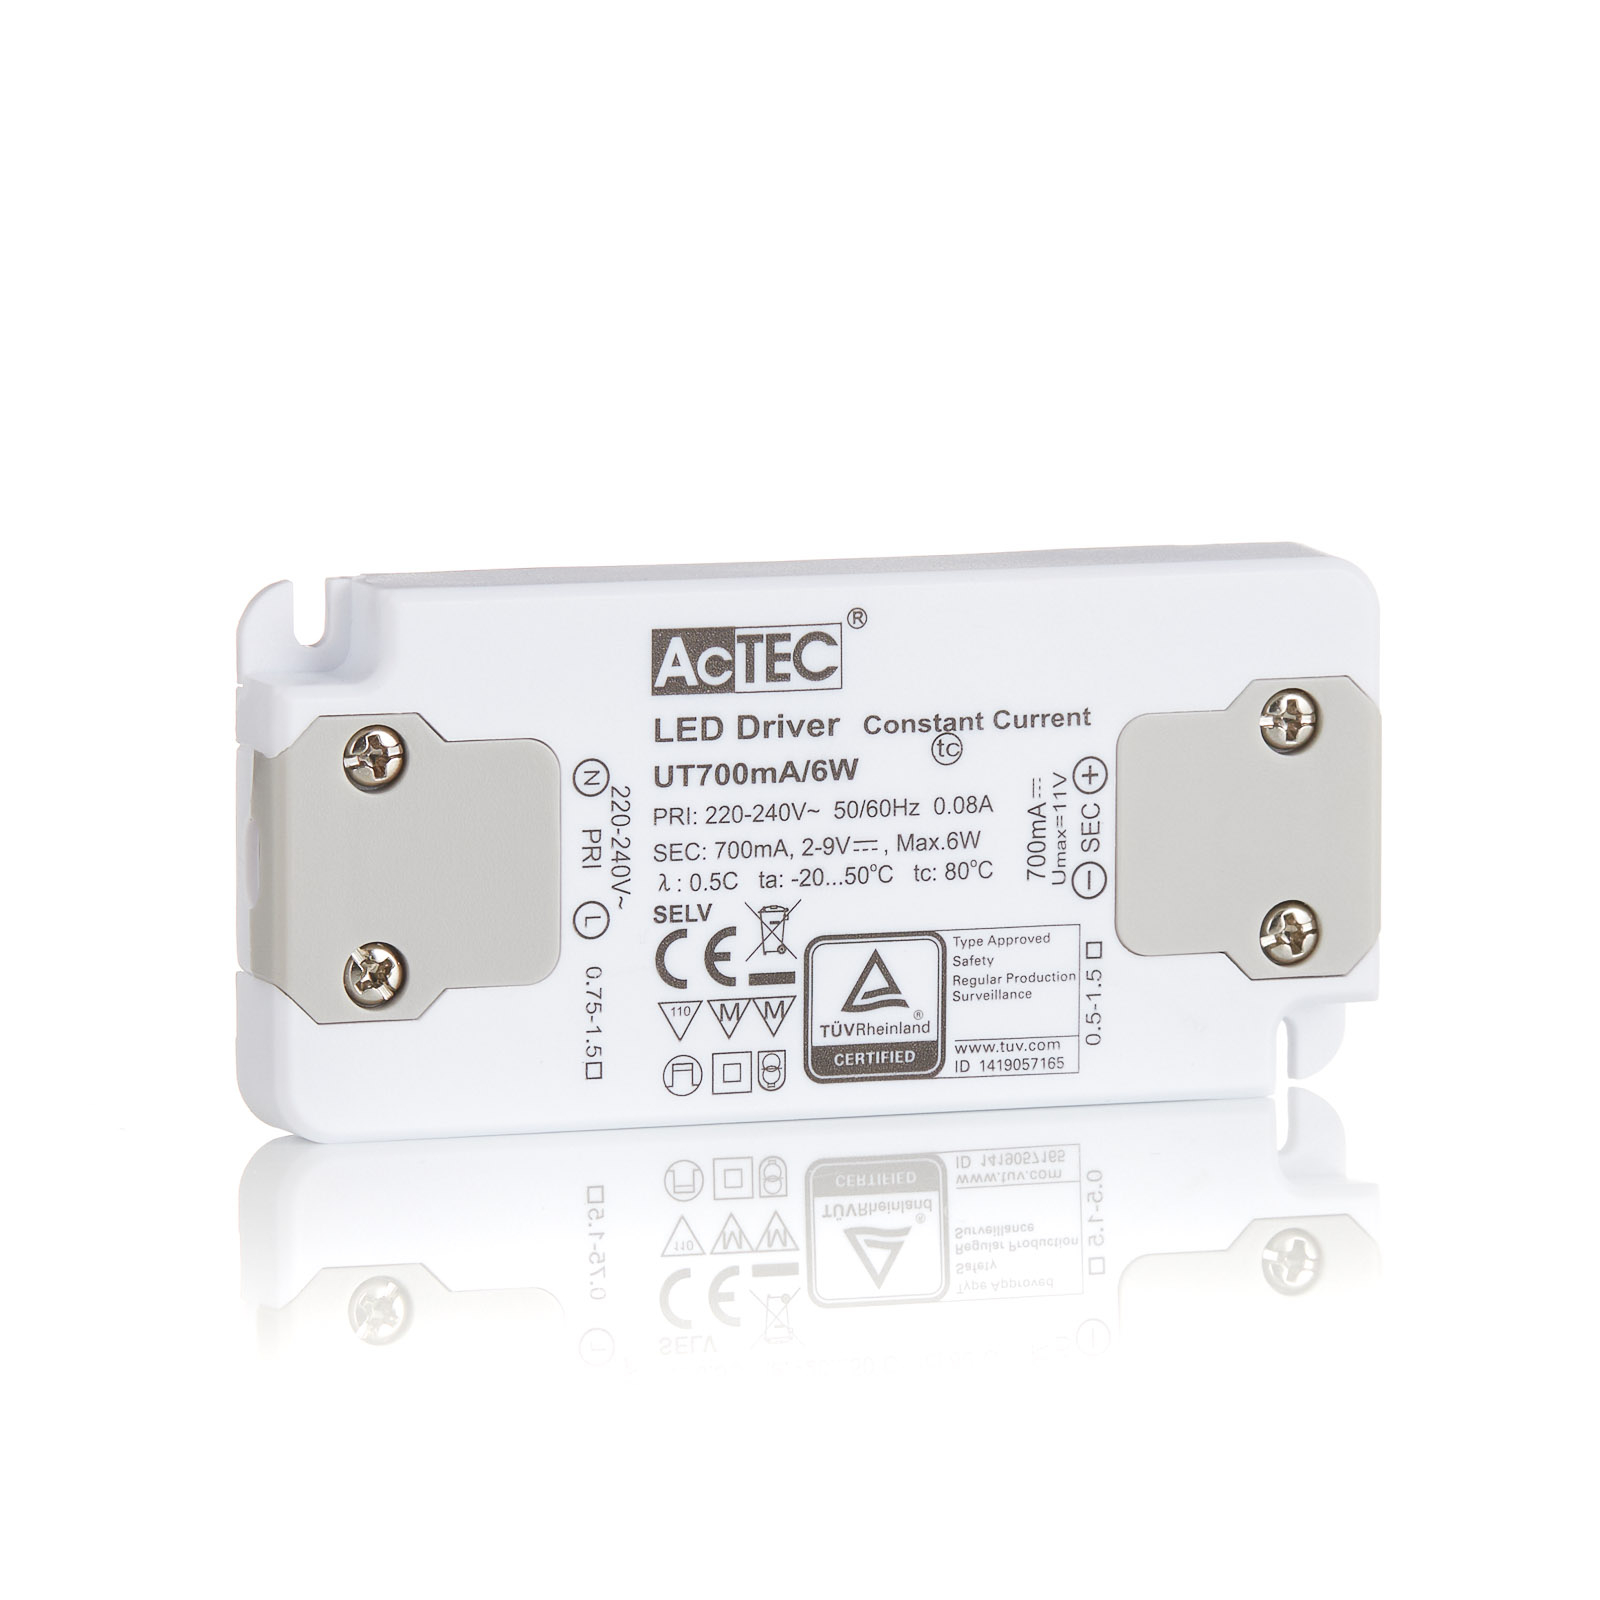 AcTEC Slim LED driver CC 700mA, 6W